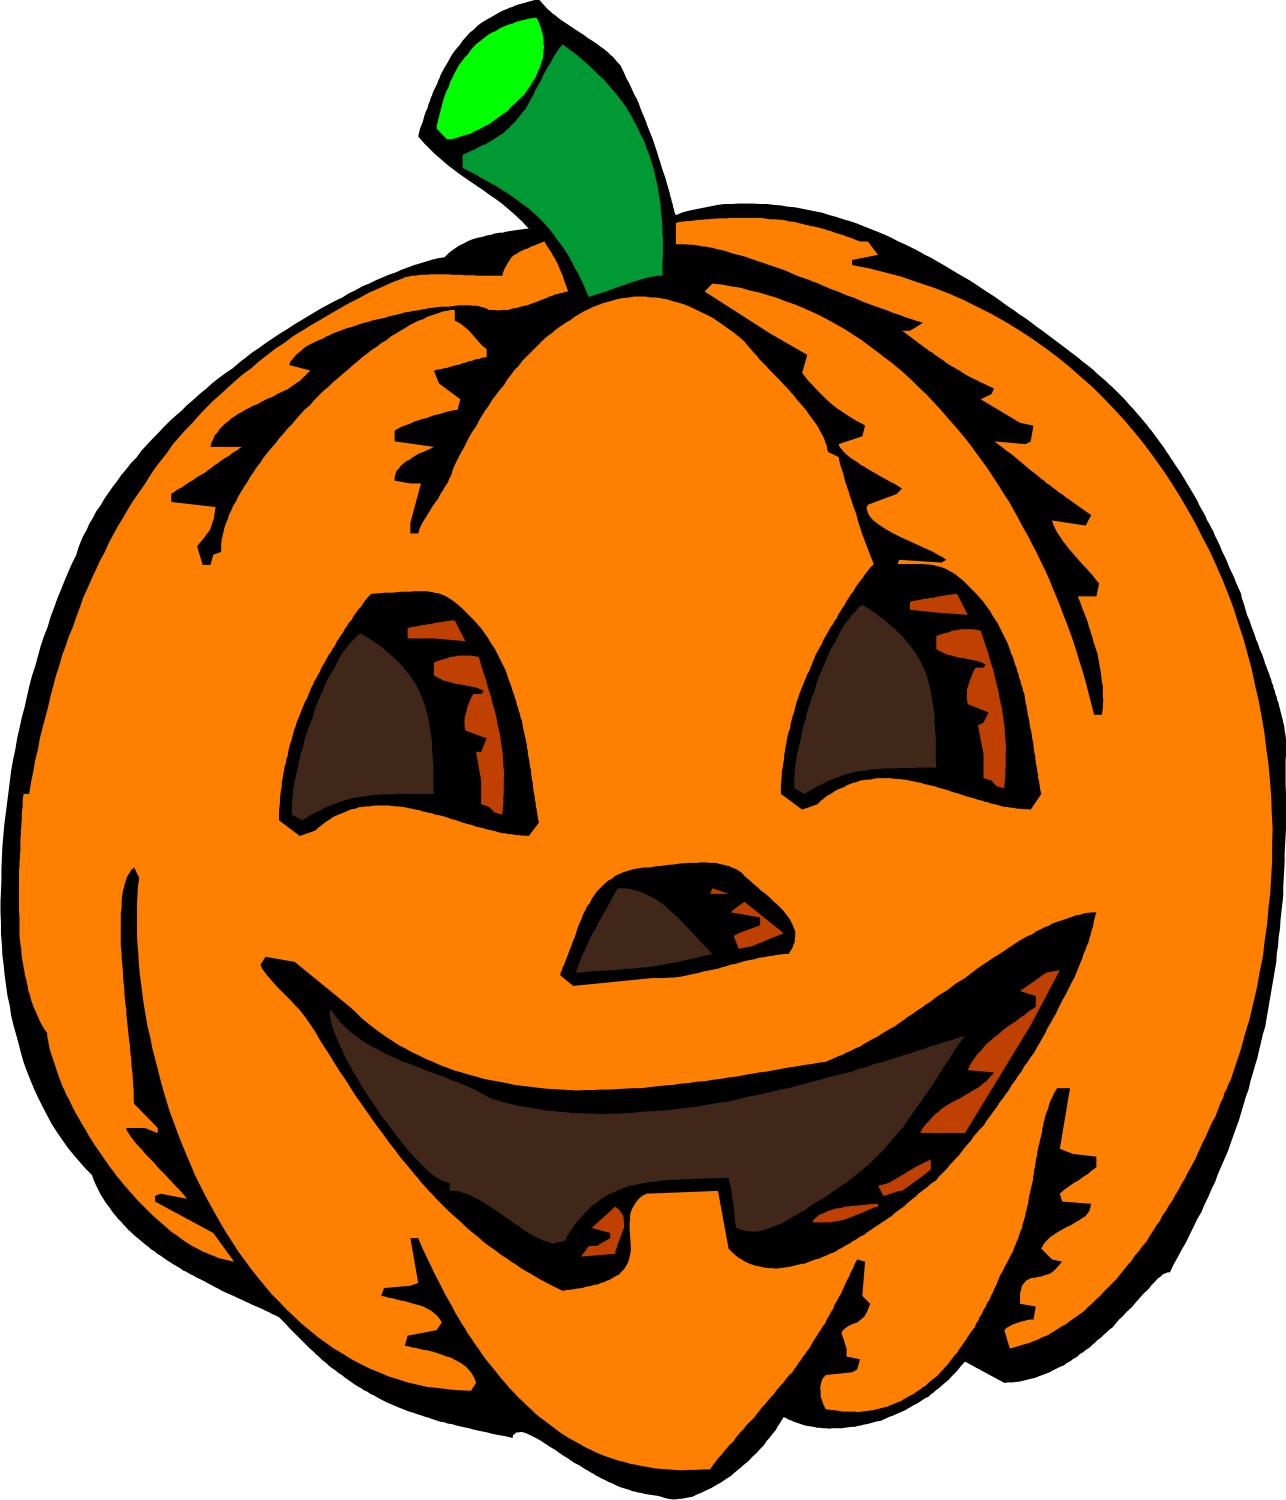 1286x1500 Falling Clipart Pumpkin Patch Pencil And In Color Falling